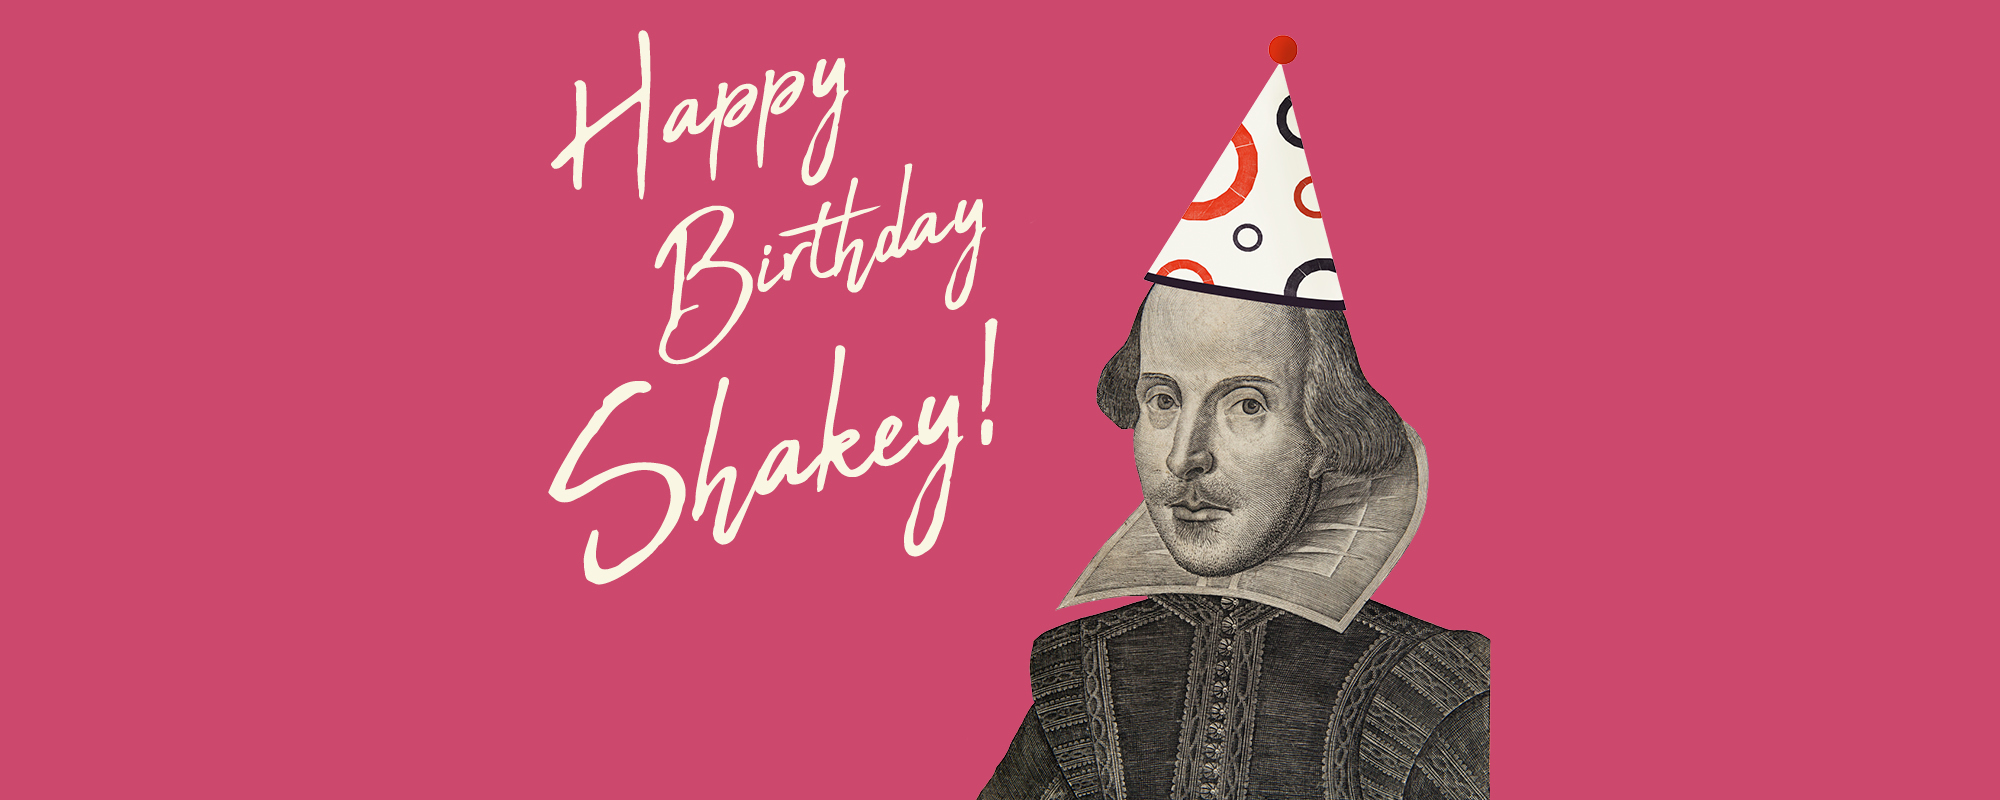 Happy Birthday Shakey! hand written text alongside an image of Shakespeare wearing a party hat